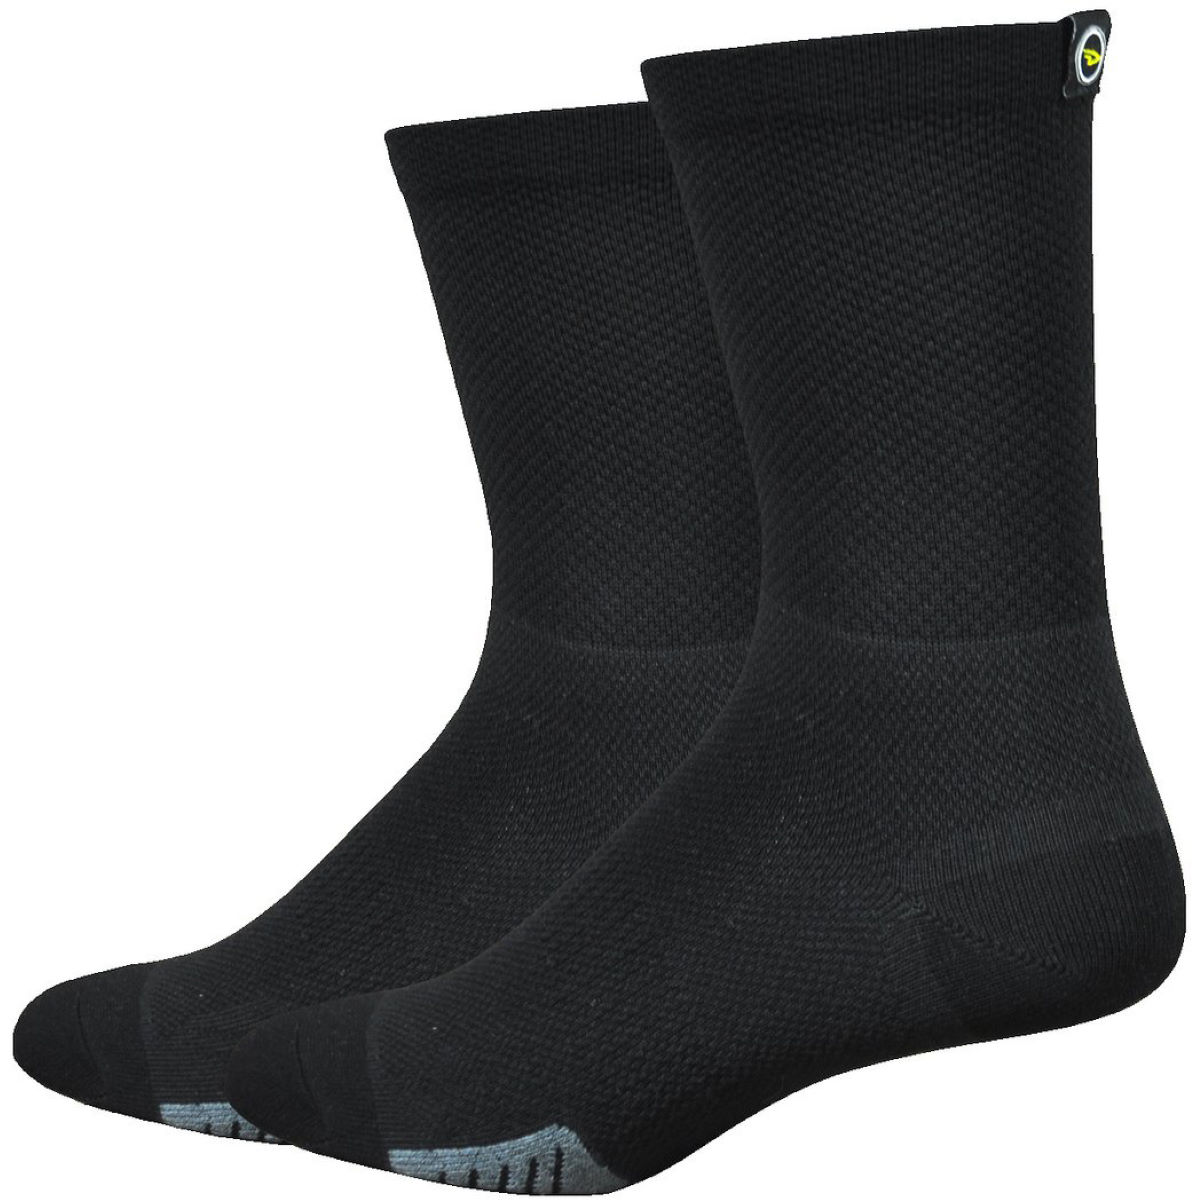 DeFeet DeFeet Cyclismo Socks with Tab   Socks